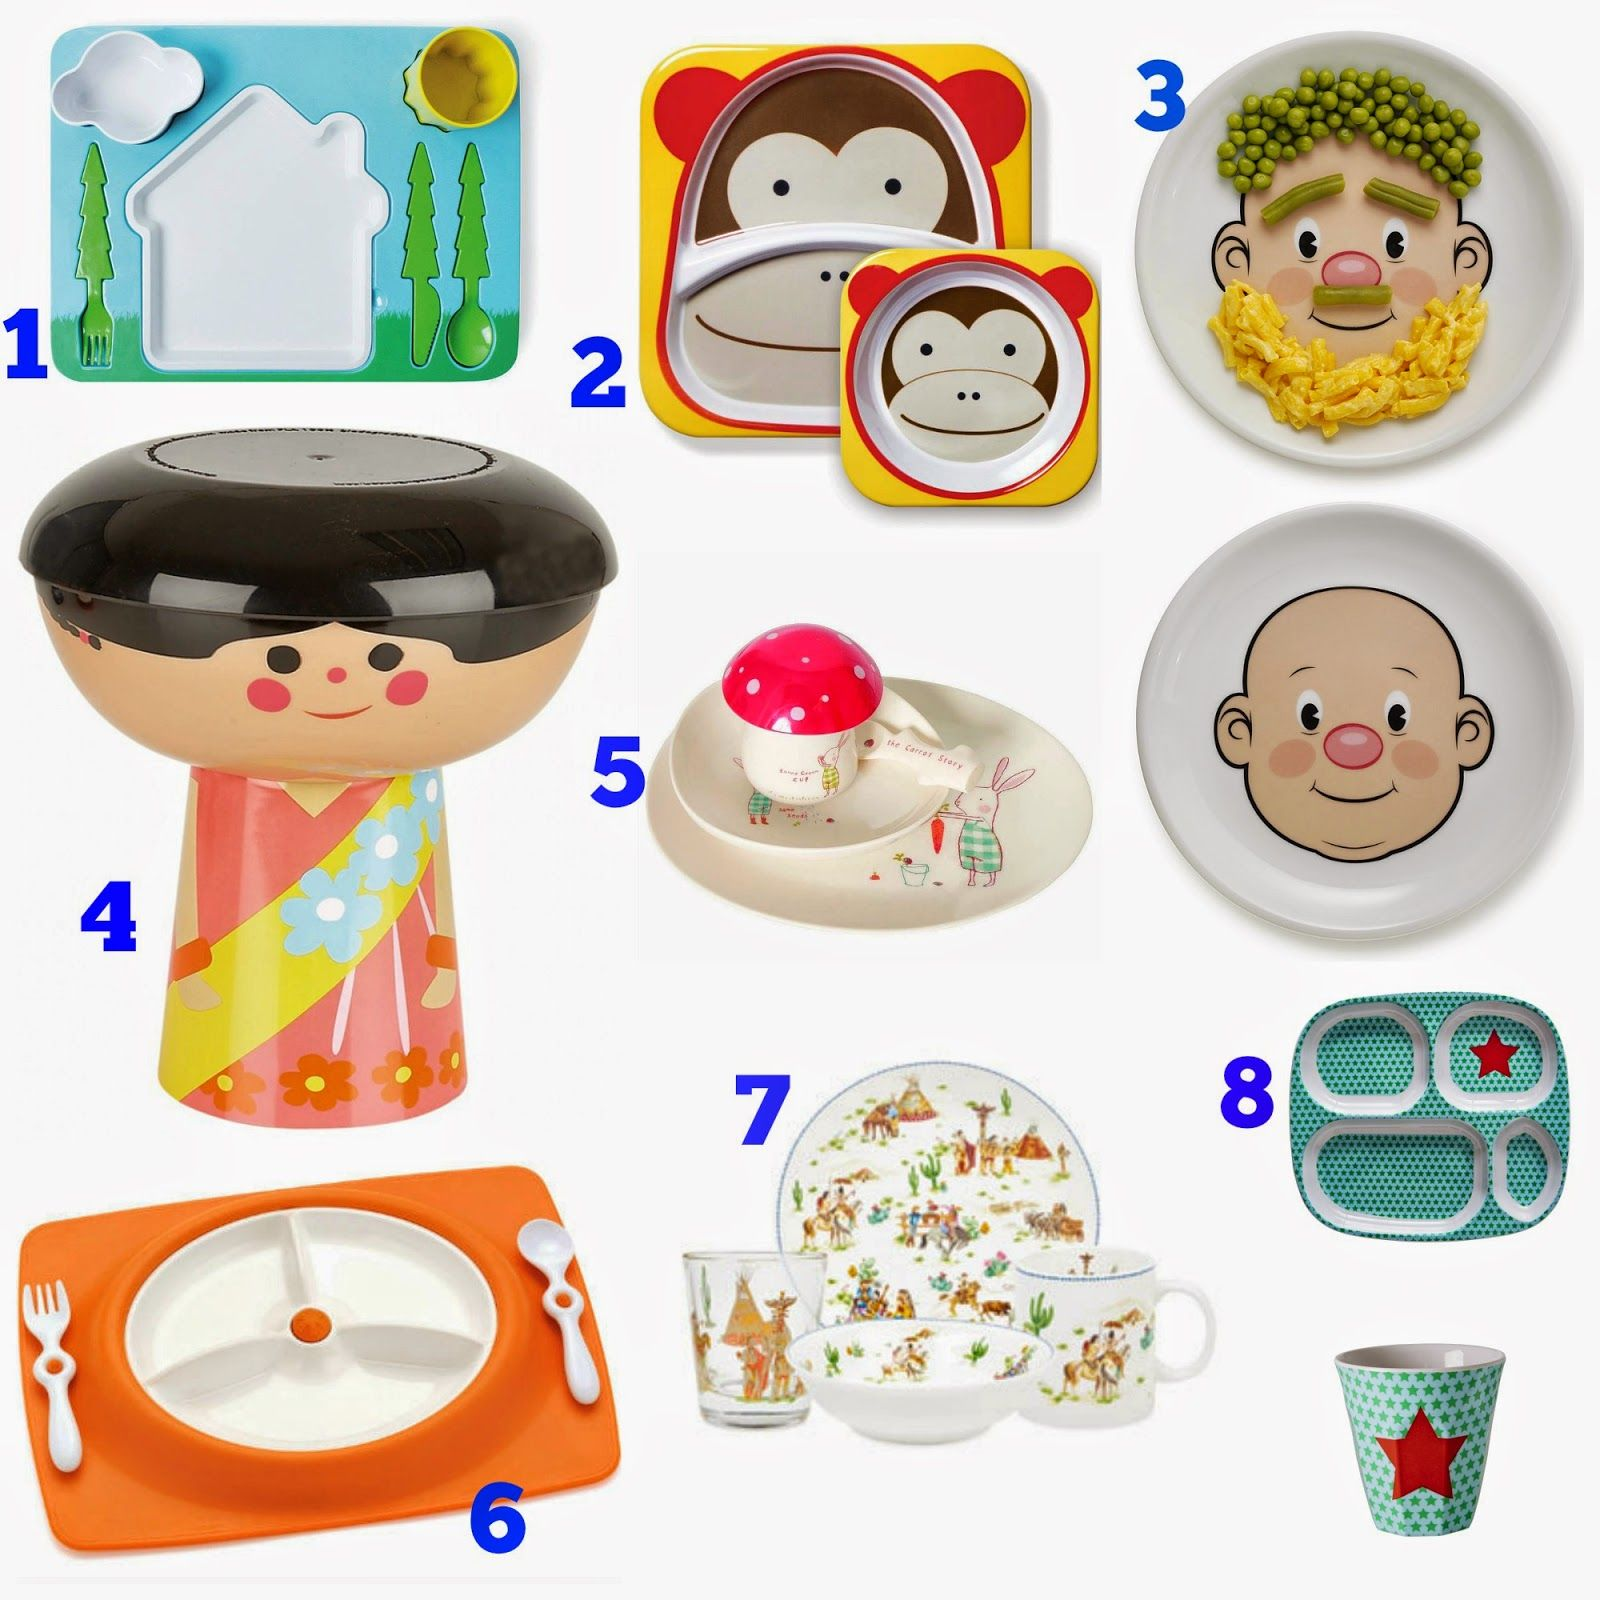 Toddler dinner plates, cool plates for kids and babies